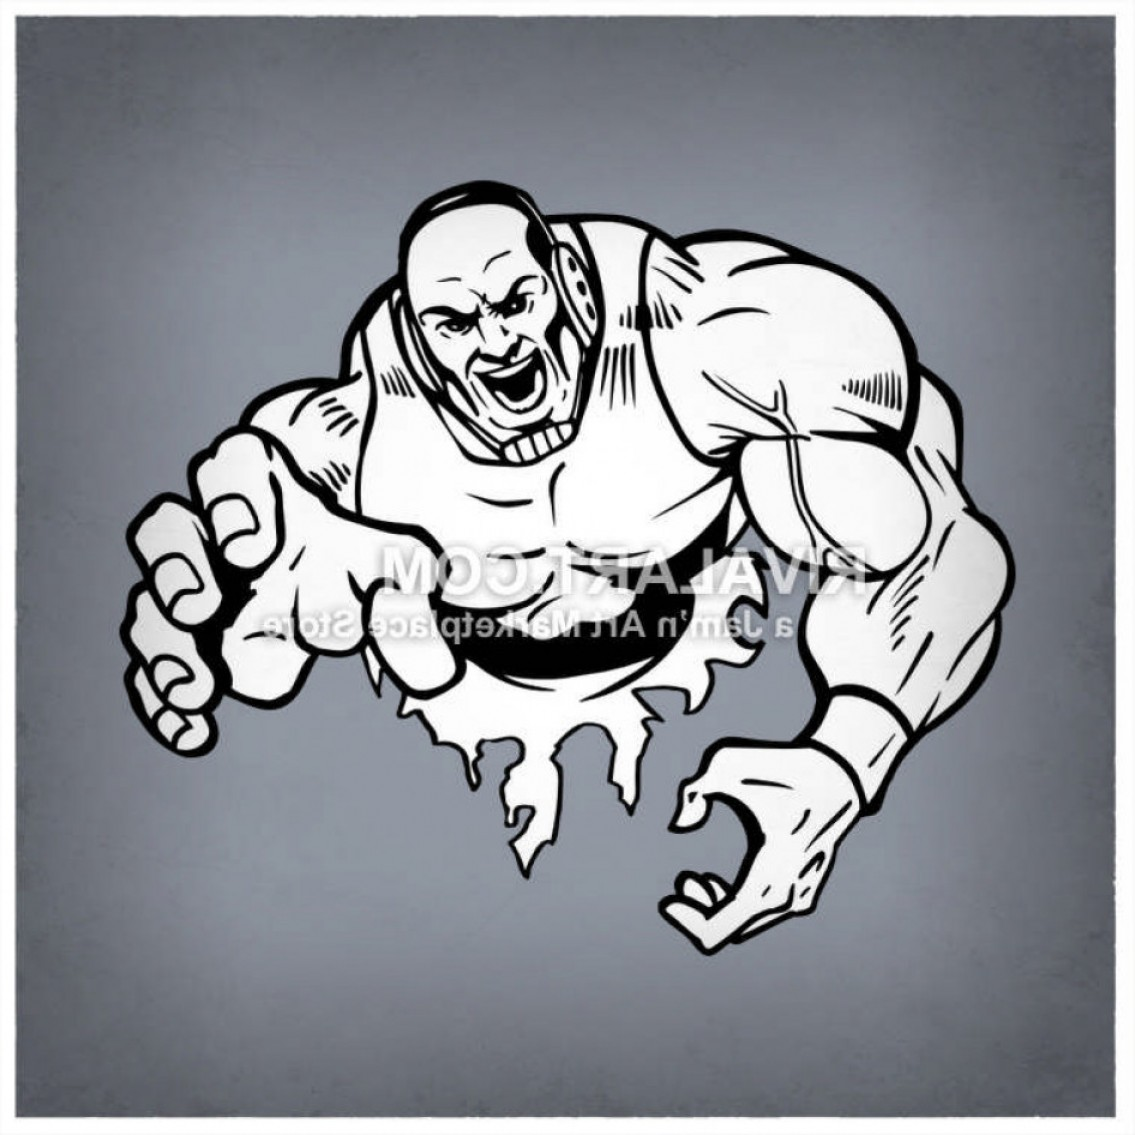 Superman Black And White Vector: Vector Clipart Of Black White Wrestling Wrestlers Mens Muscles Muscular Graphic